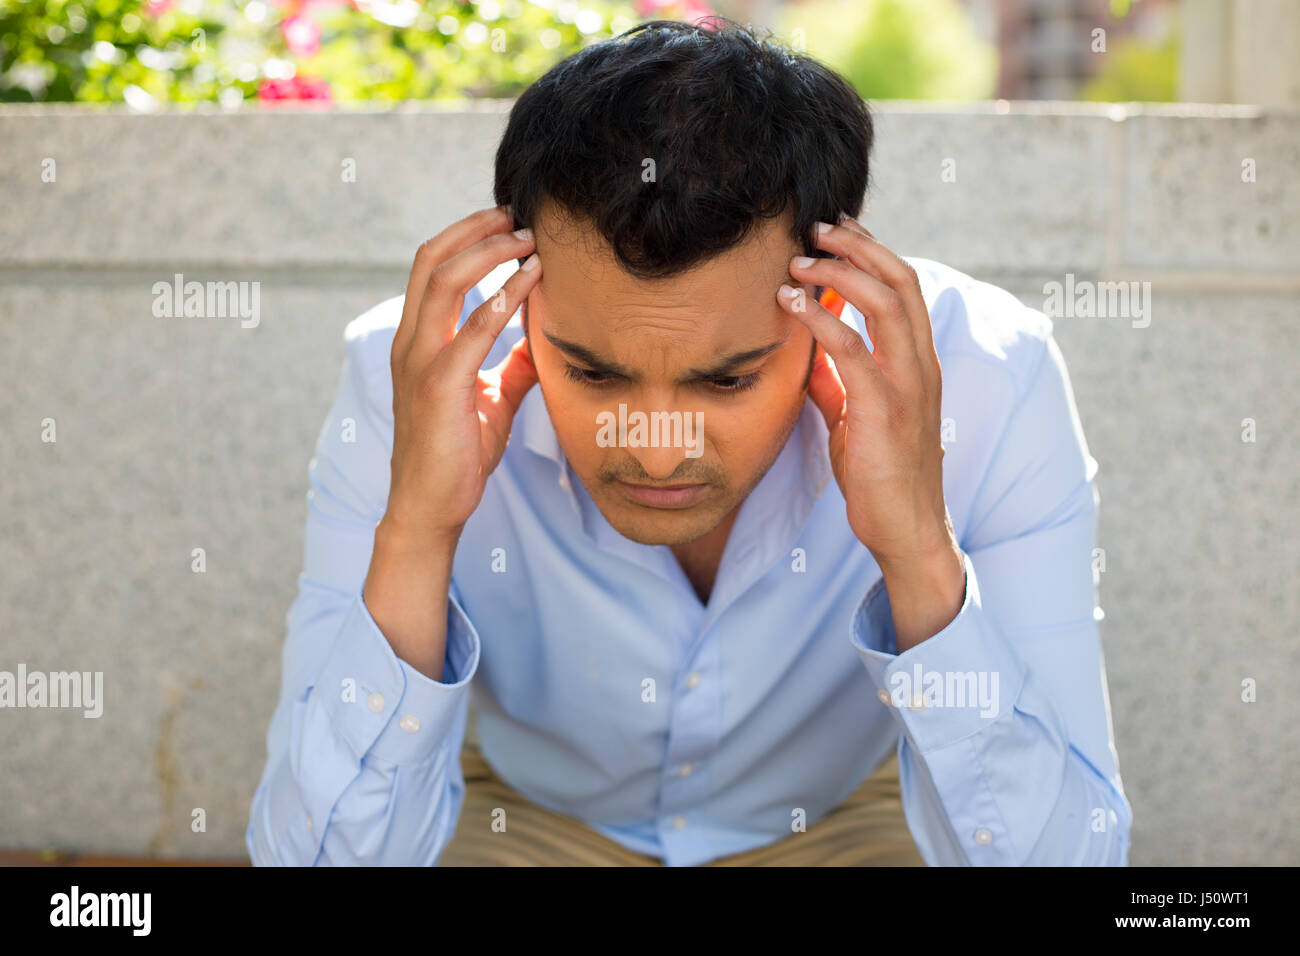 Closeup portrait, stressed young business man, hands on head with bad headache, isolated background of gray bench - Stock Image